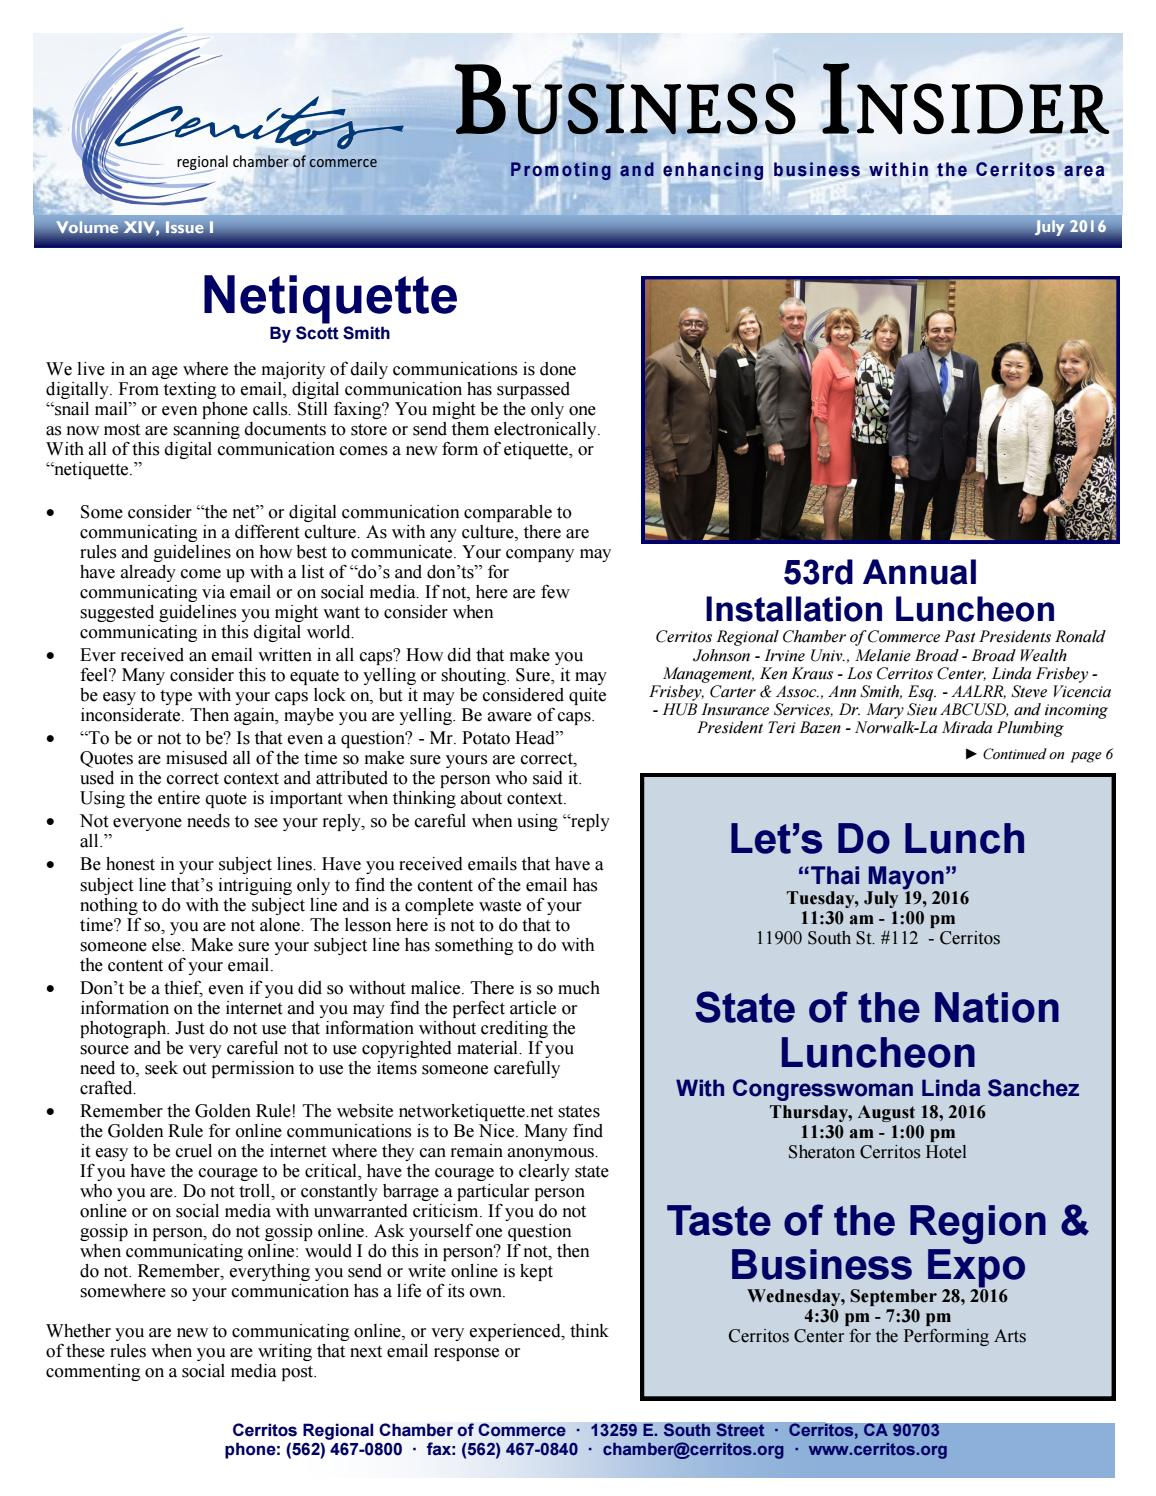 july 2016 cerritos business insider newsletter by cerritos regional chamber of commerce issuu issuu